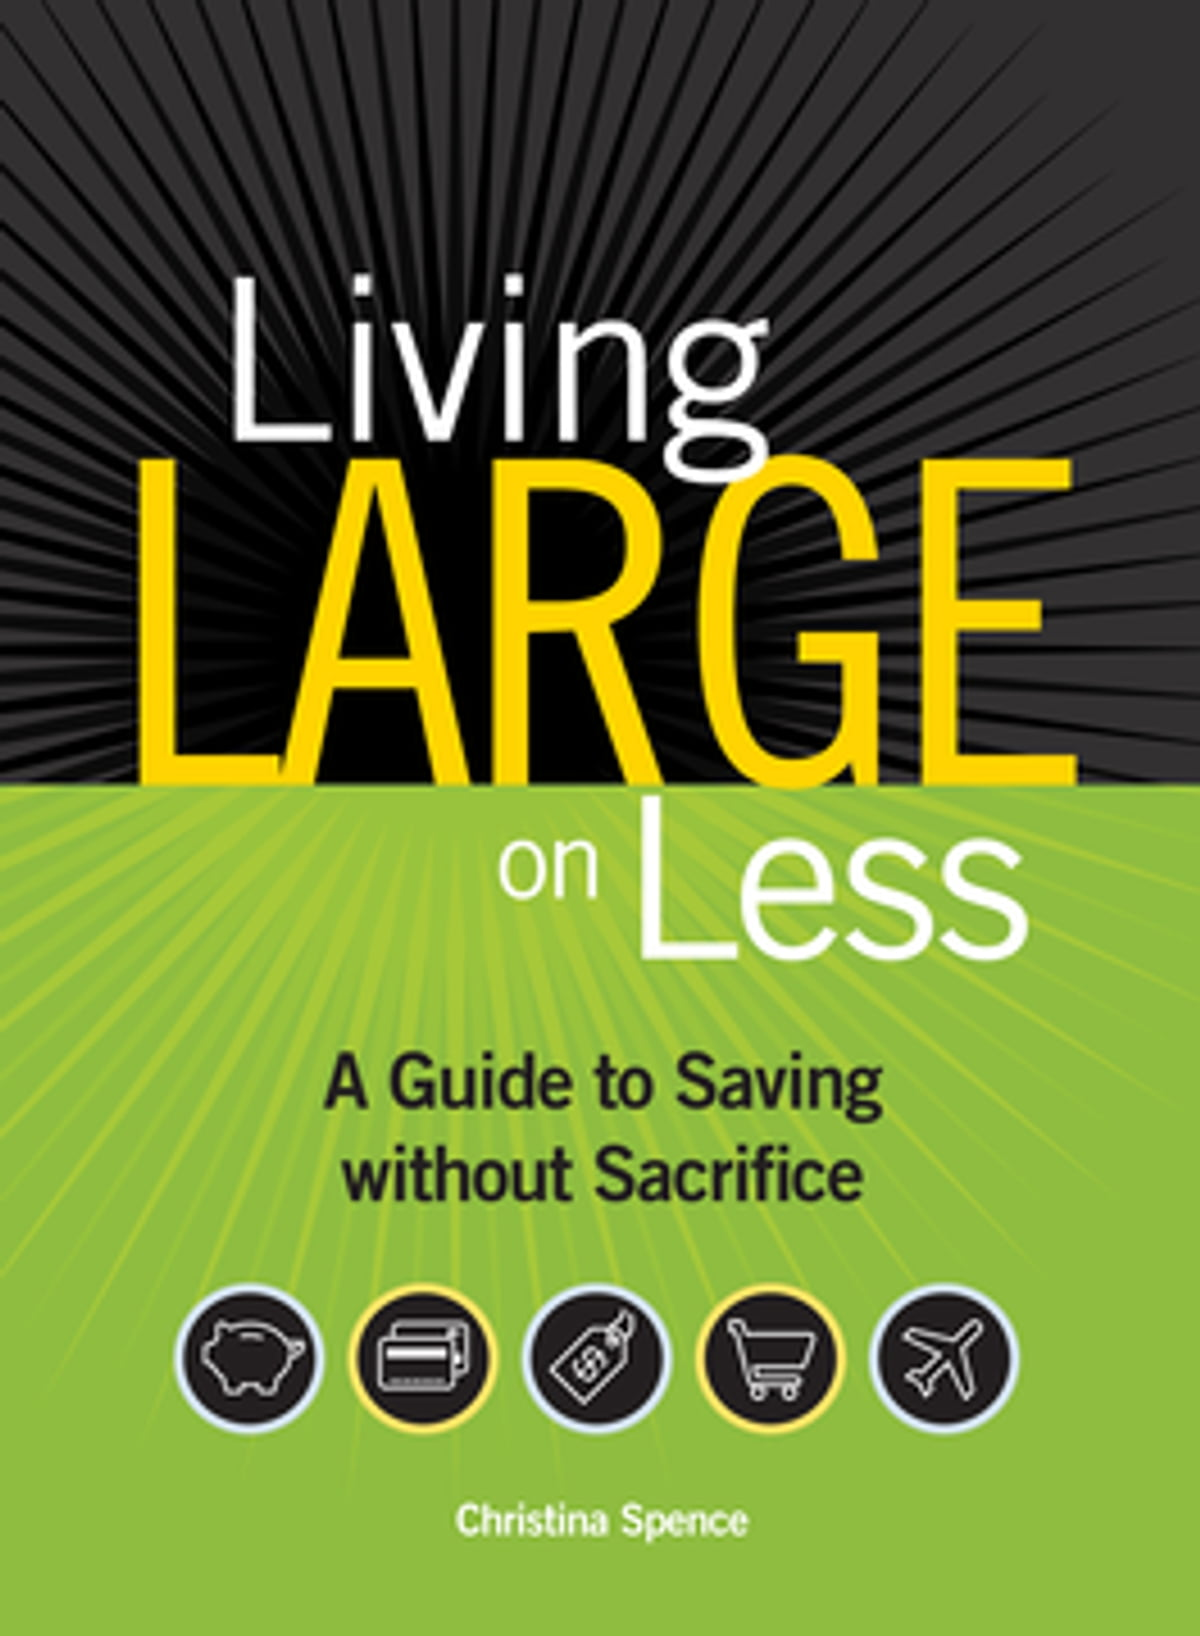 Living Large On Less eBook by Christina Spence - 9781440313745 | Rakuten  Kobo